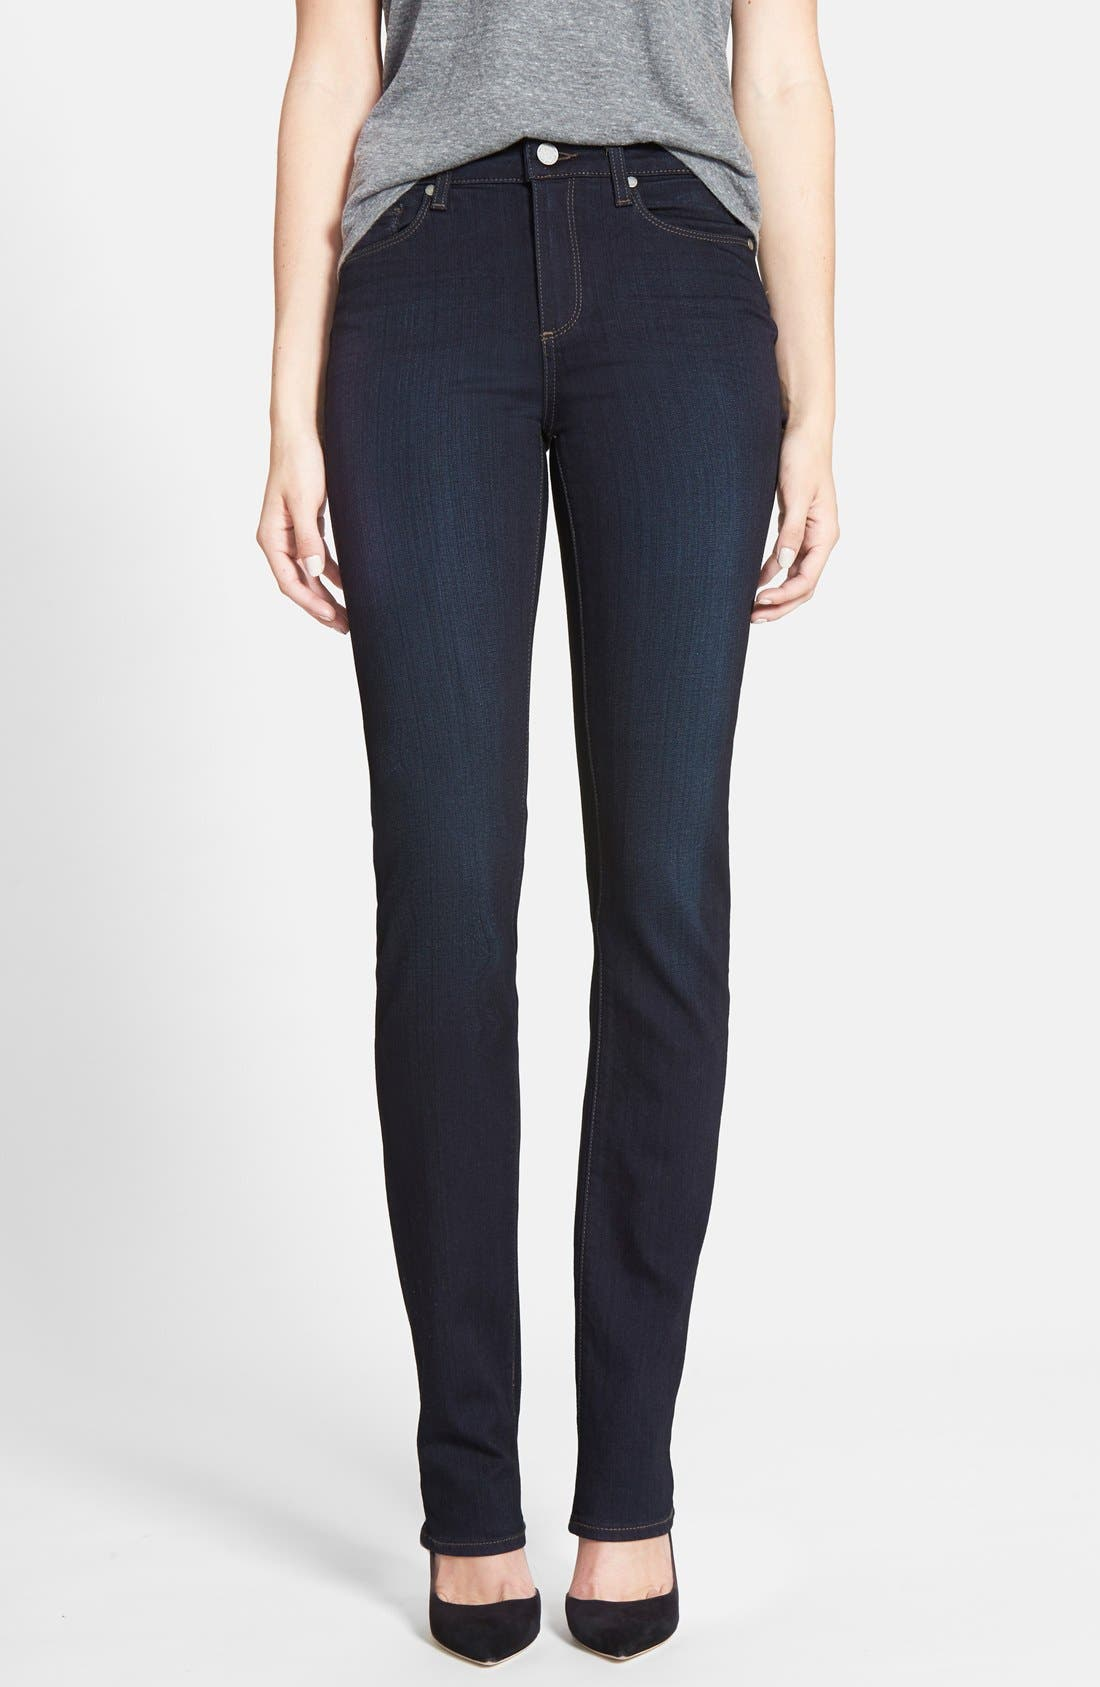 PAIGE Transcend - Hoxton High Waist Straight Jeans (Mona)